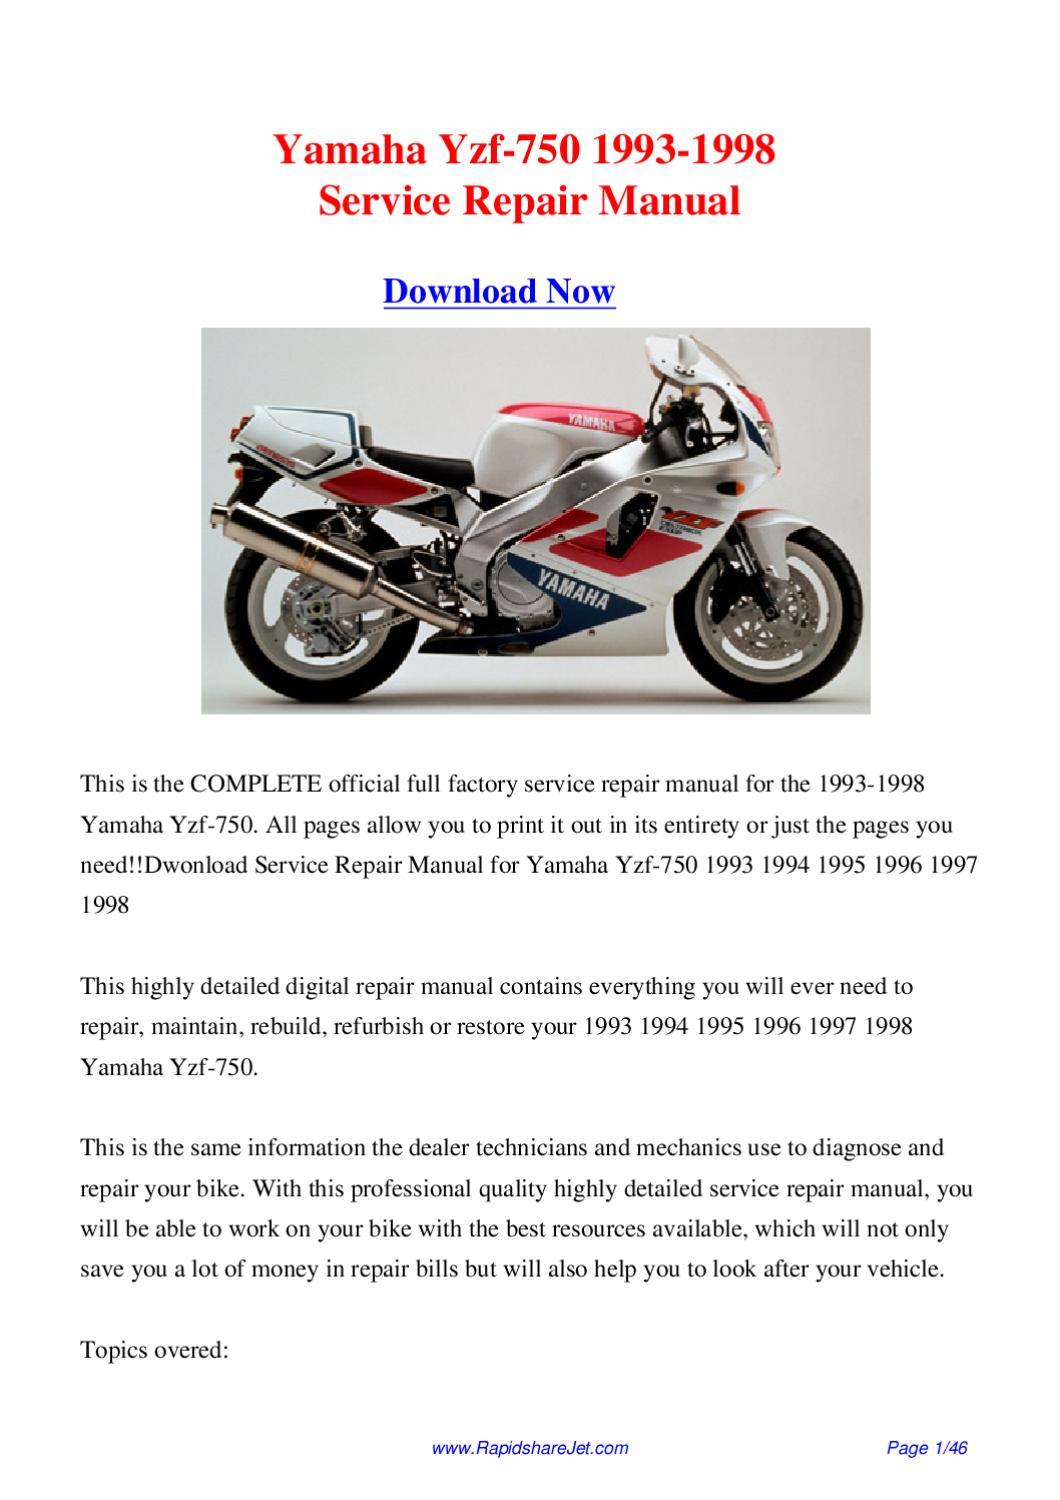 yamaha yzf 750 1993 1998 service repair manual by hong lee. Black Bedroom Furniture Sets. Home Design Ideas